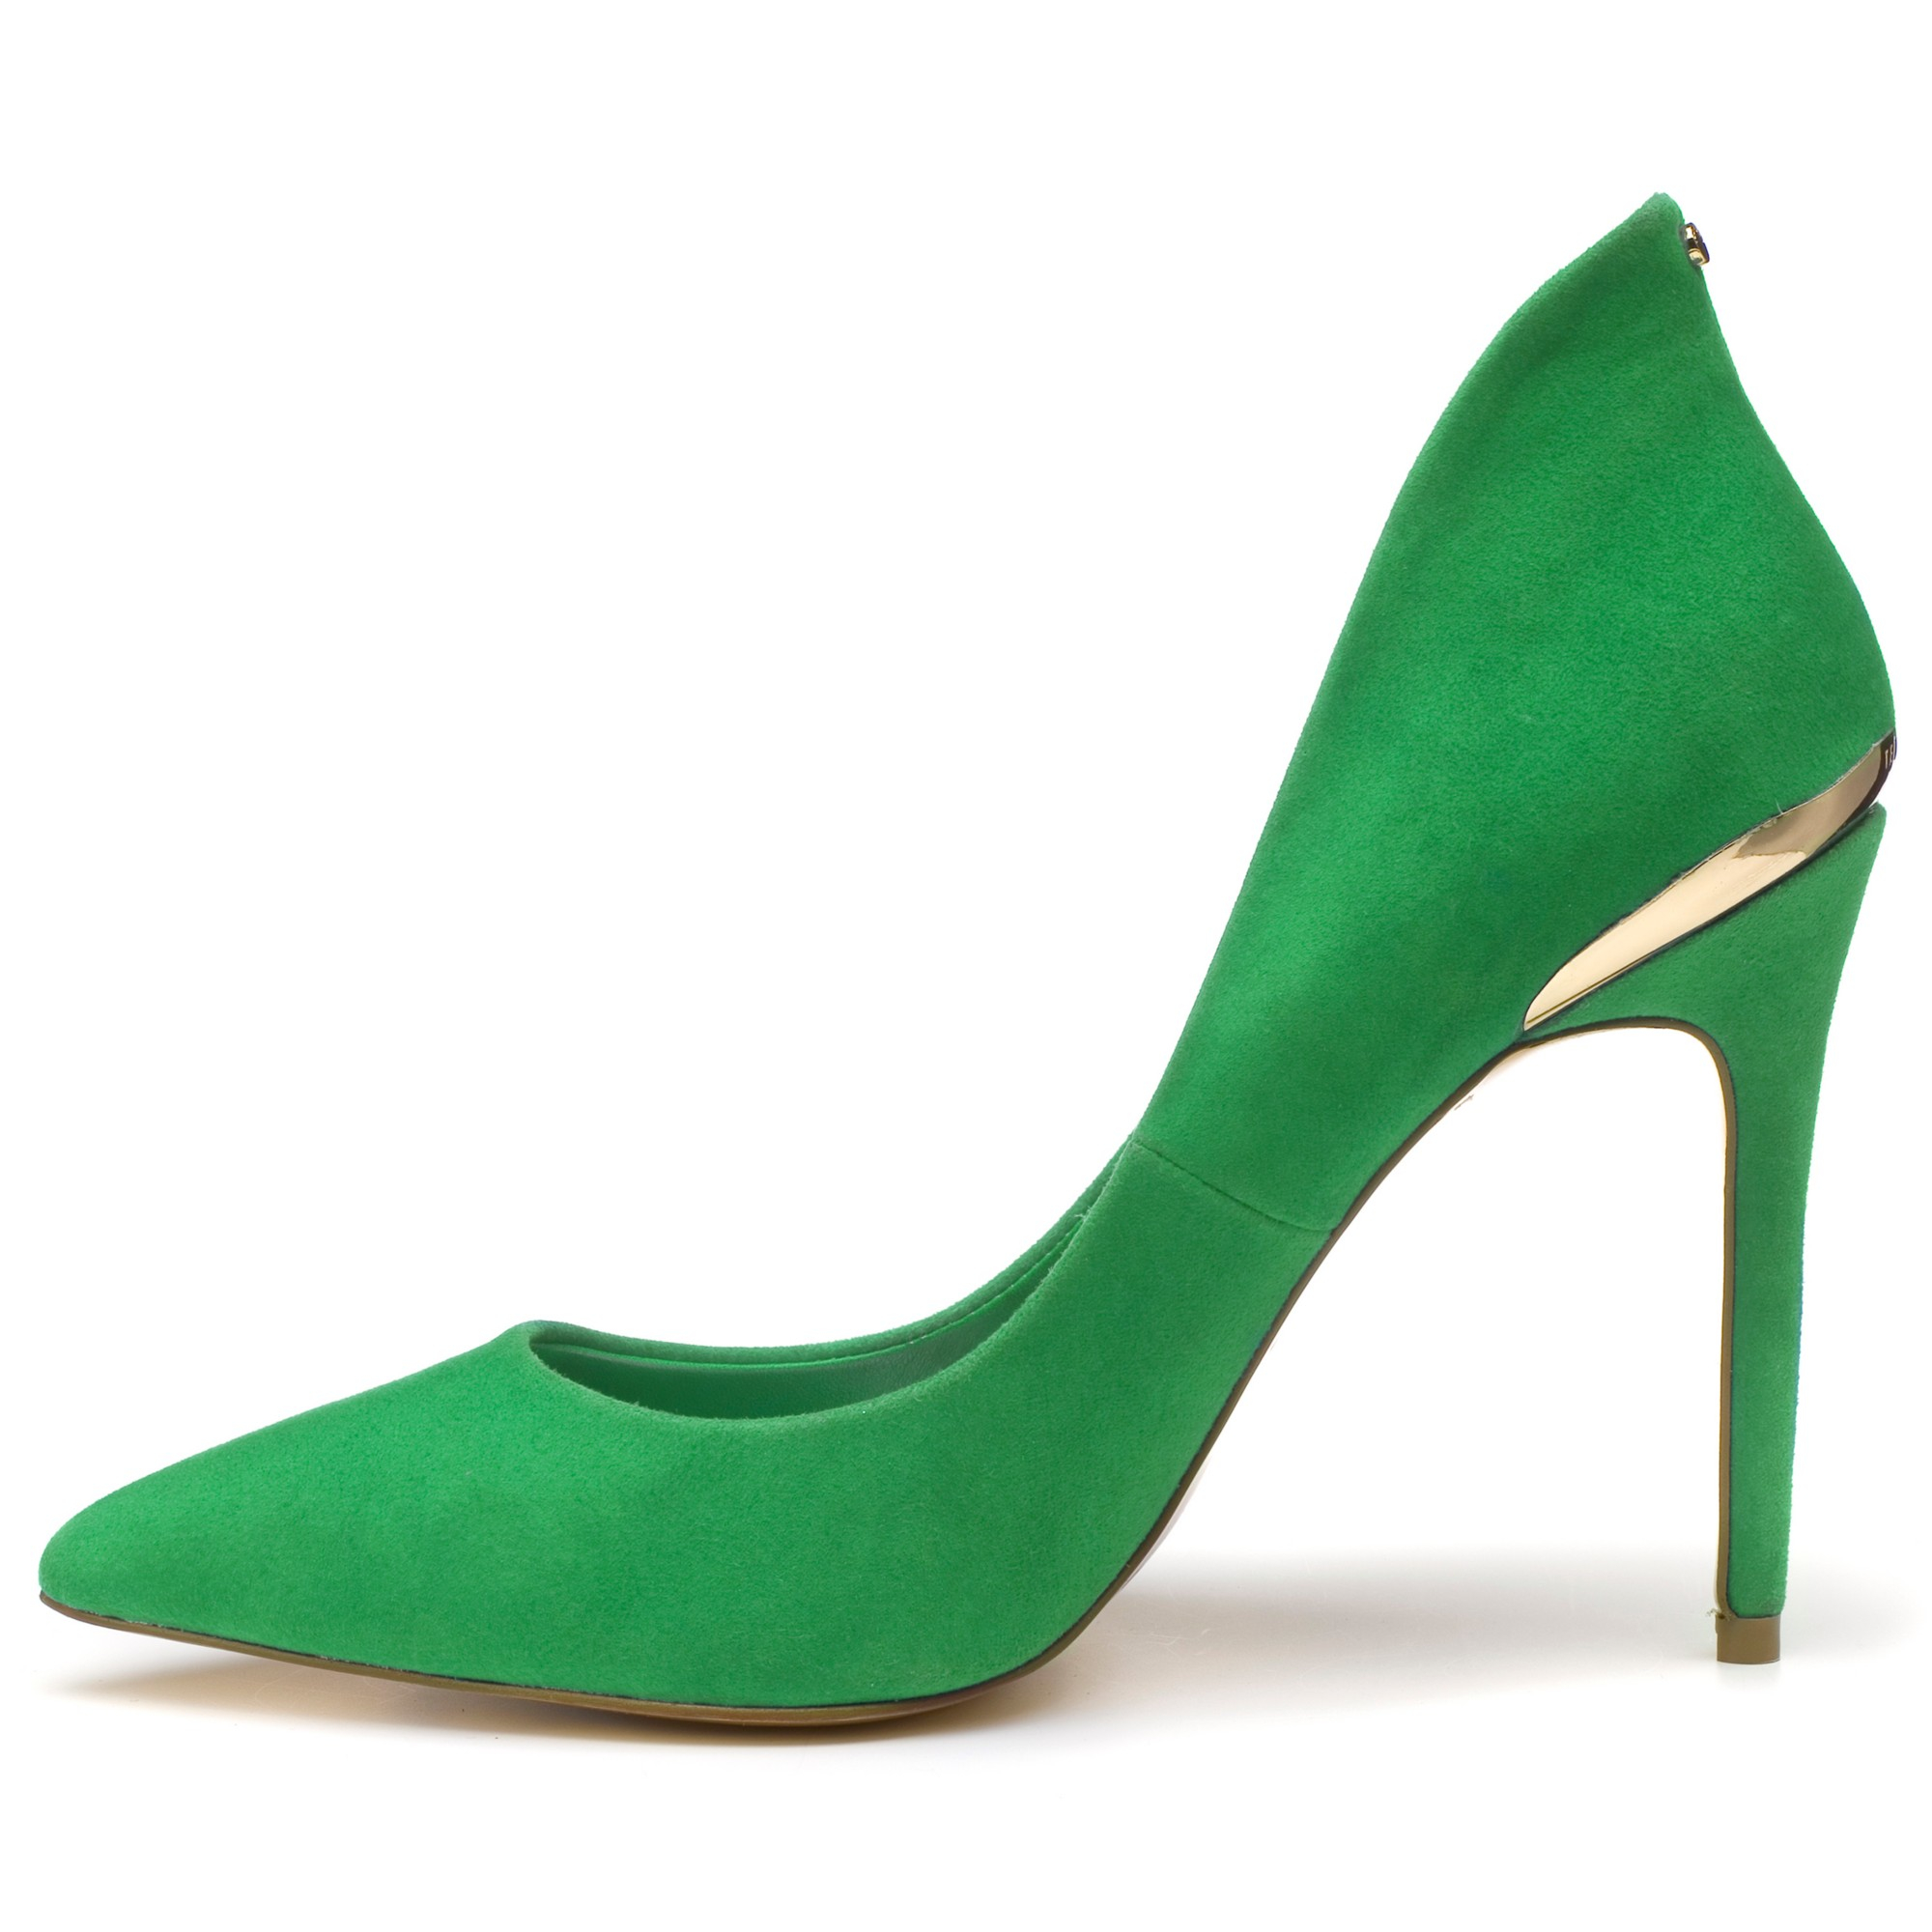 3cfc4469d2fe Ted Baker Savenniers Suede High Heeled Court Shoes in Green - Lyst